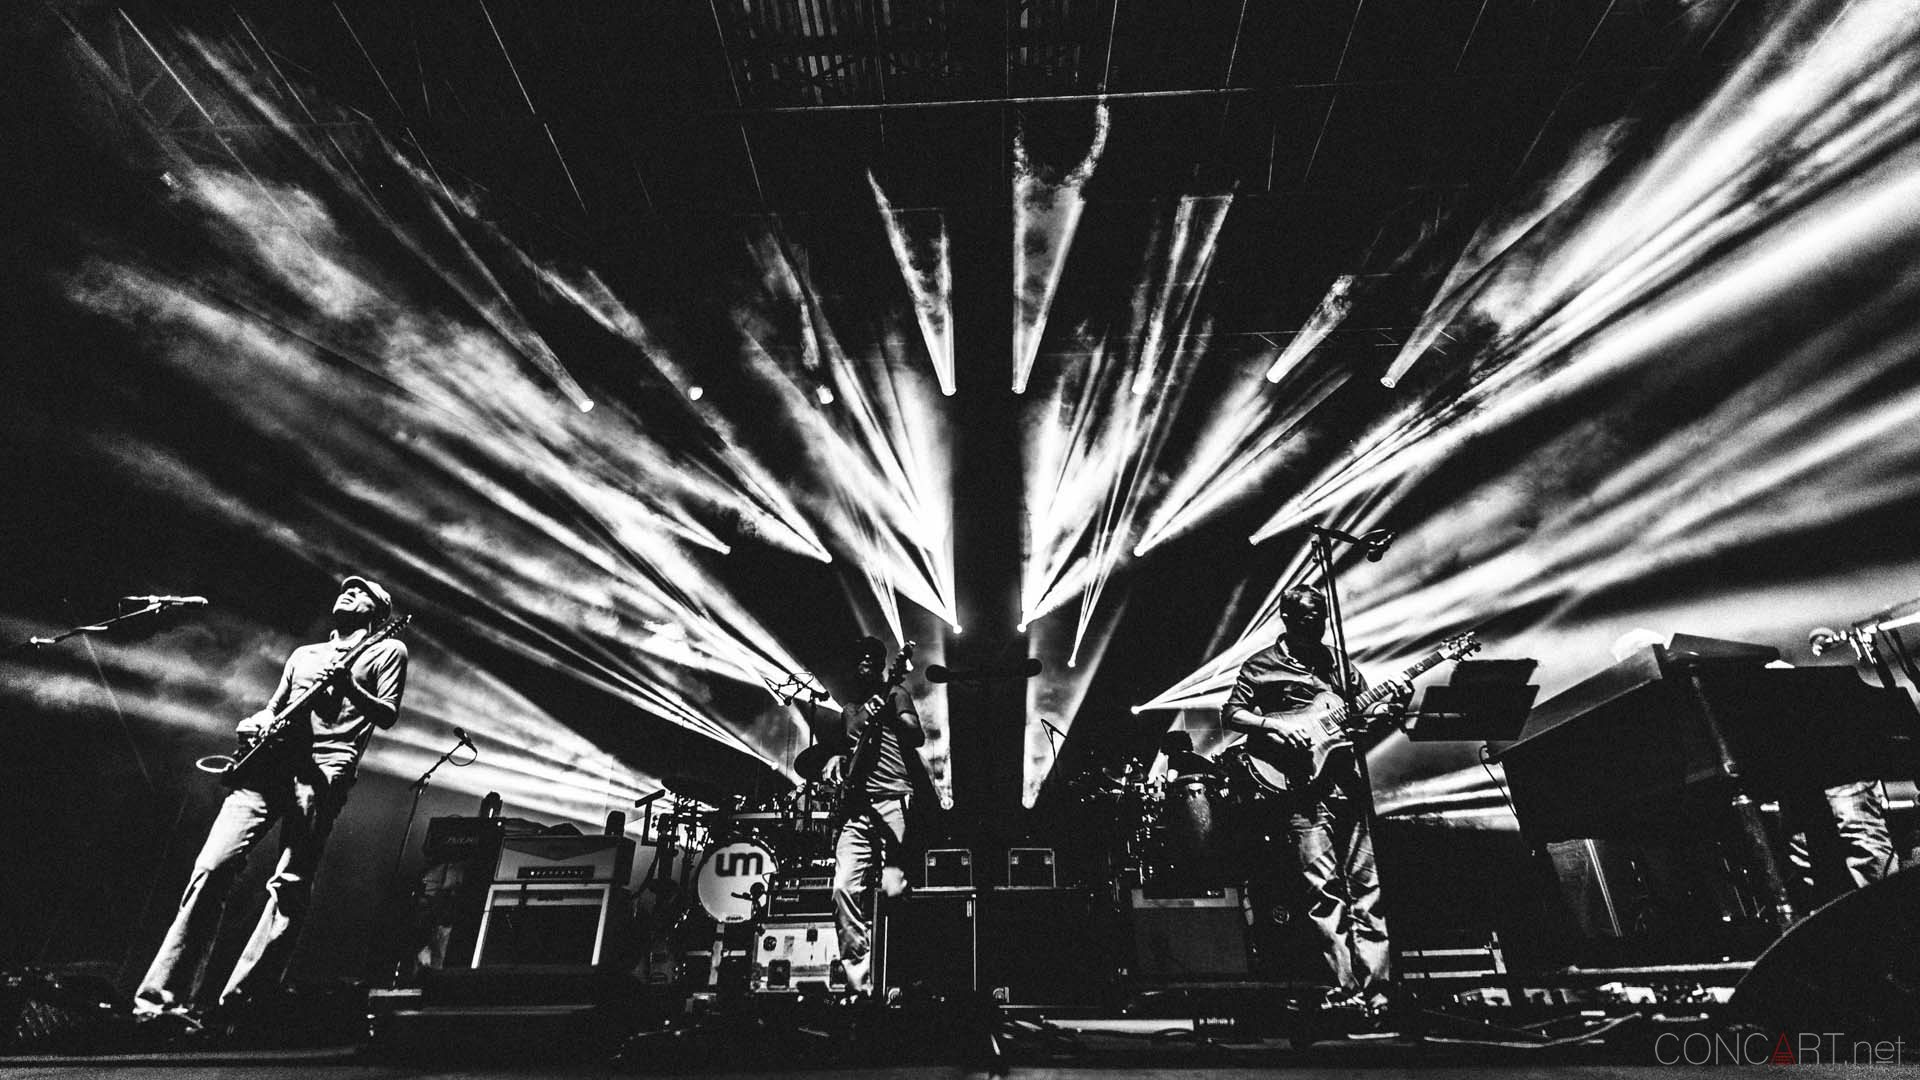 http://concart.net/shows/rock/umphreys-mcgee-live-the-lawn-indianapolis-2013/